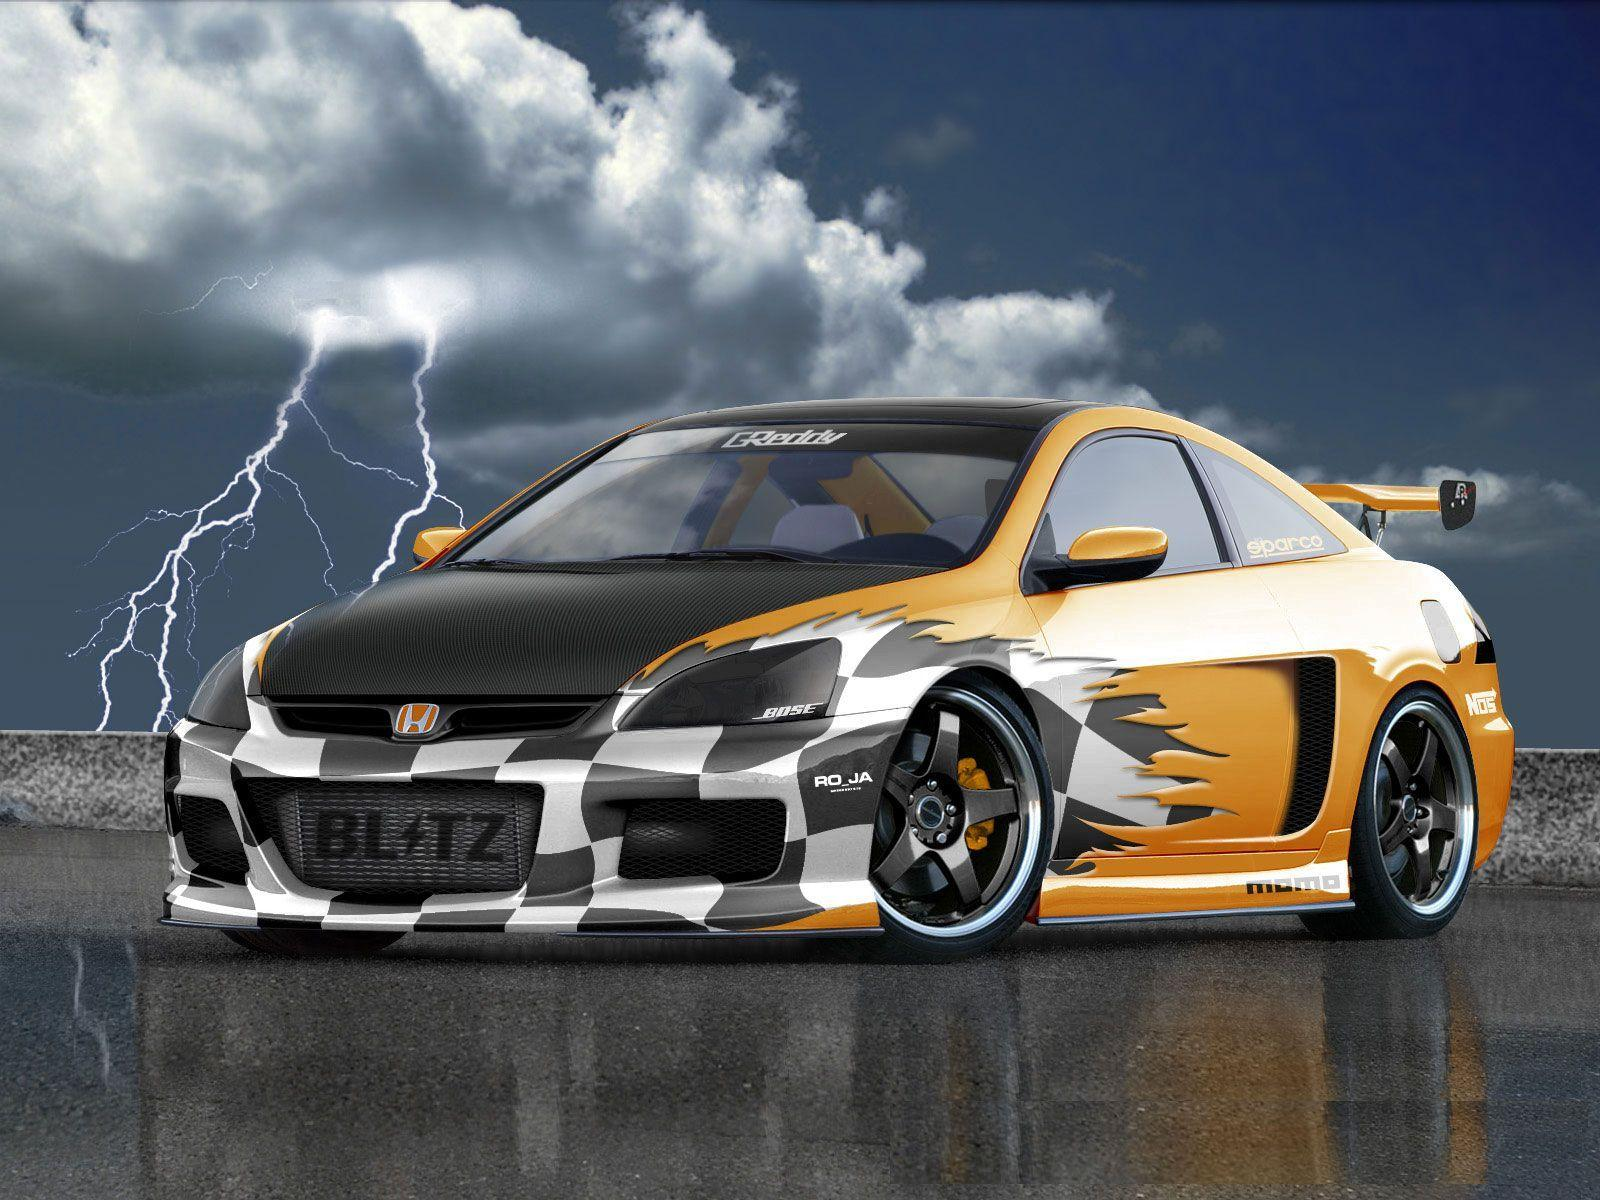 cool fast cars wallpapers | HD Cool Cars Wallpapers